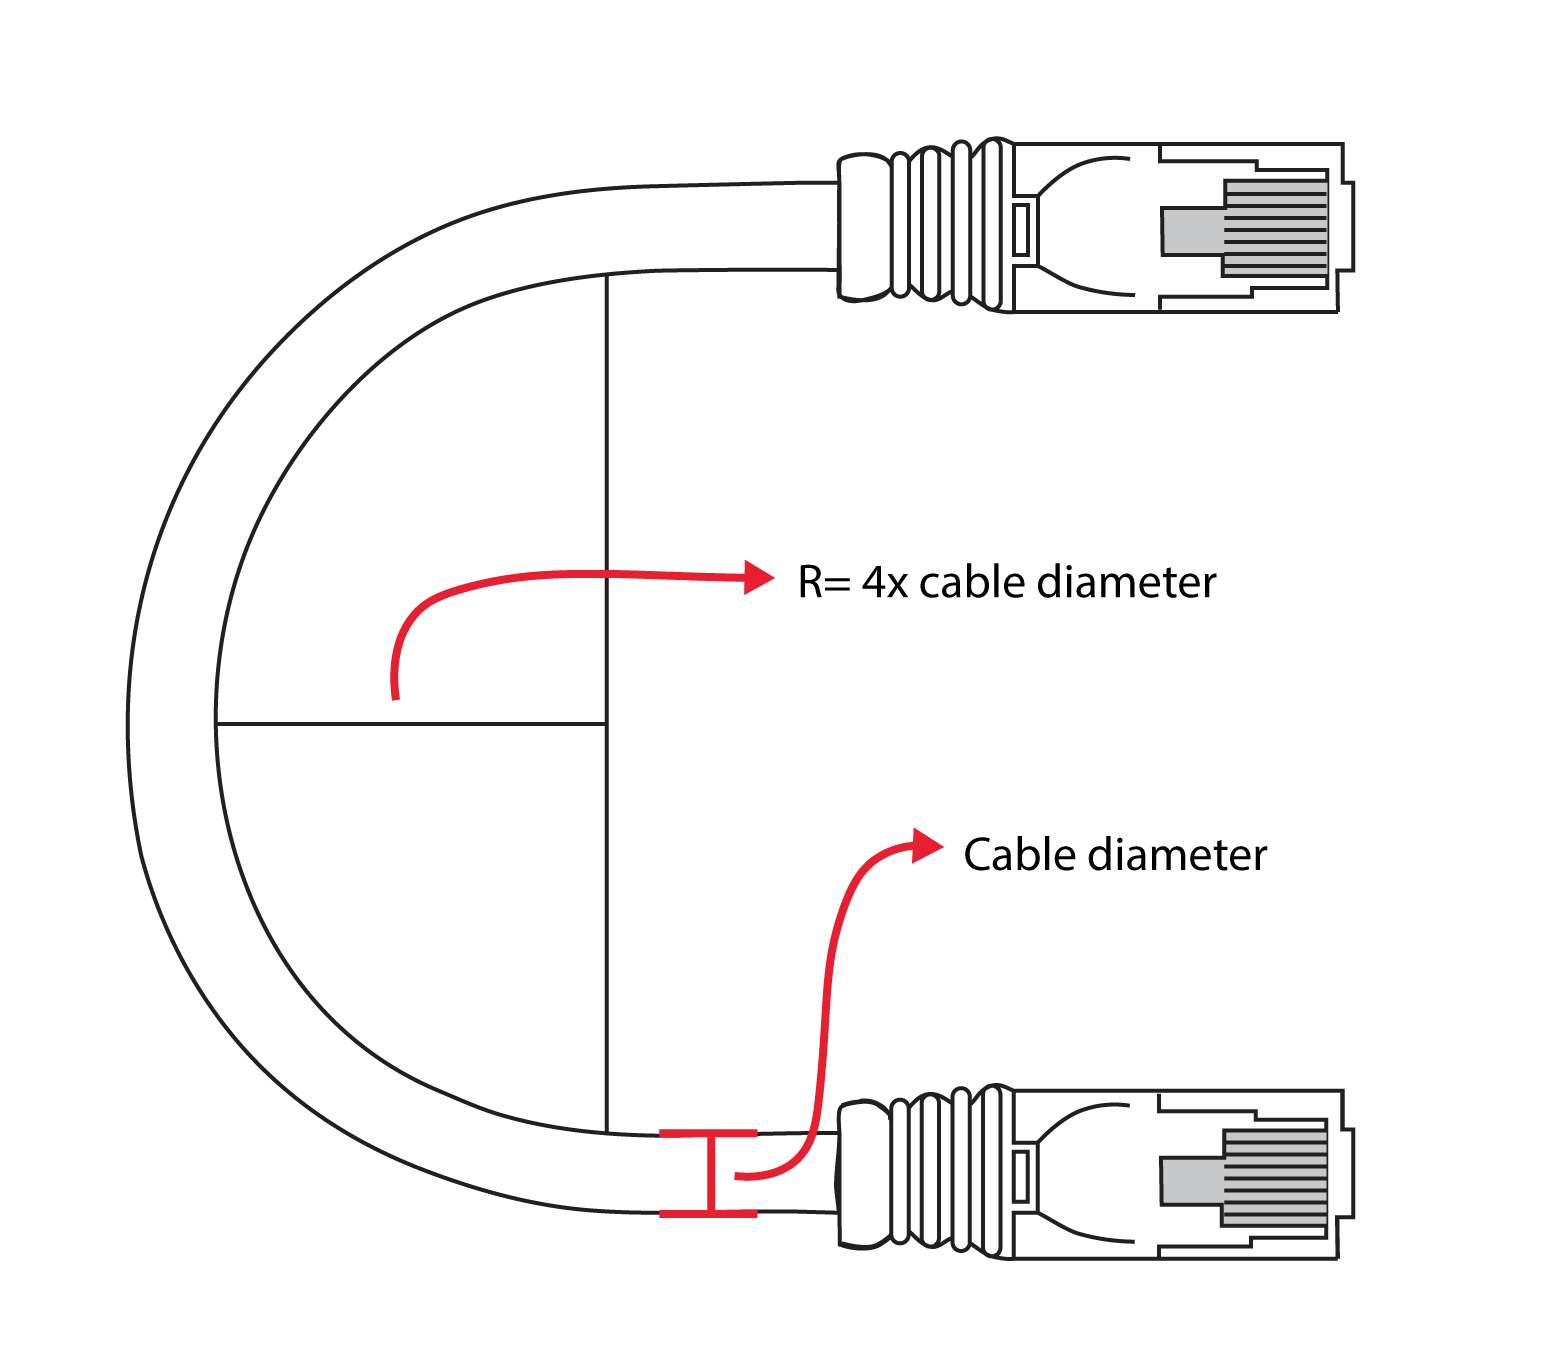 Shure Publications User Guides Mxc Diagram Additionally Pinout For Rj45 Cat5e Wiring On Xlr Cat5 Properly Securing Cables